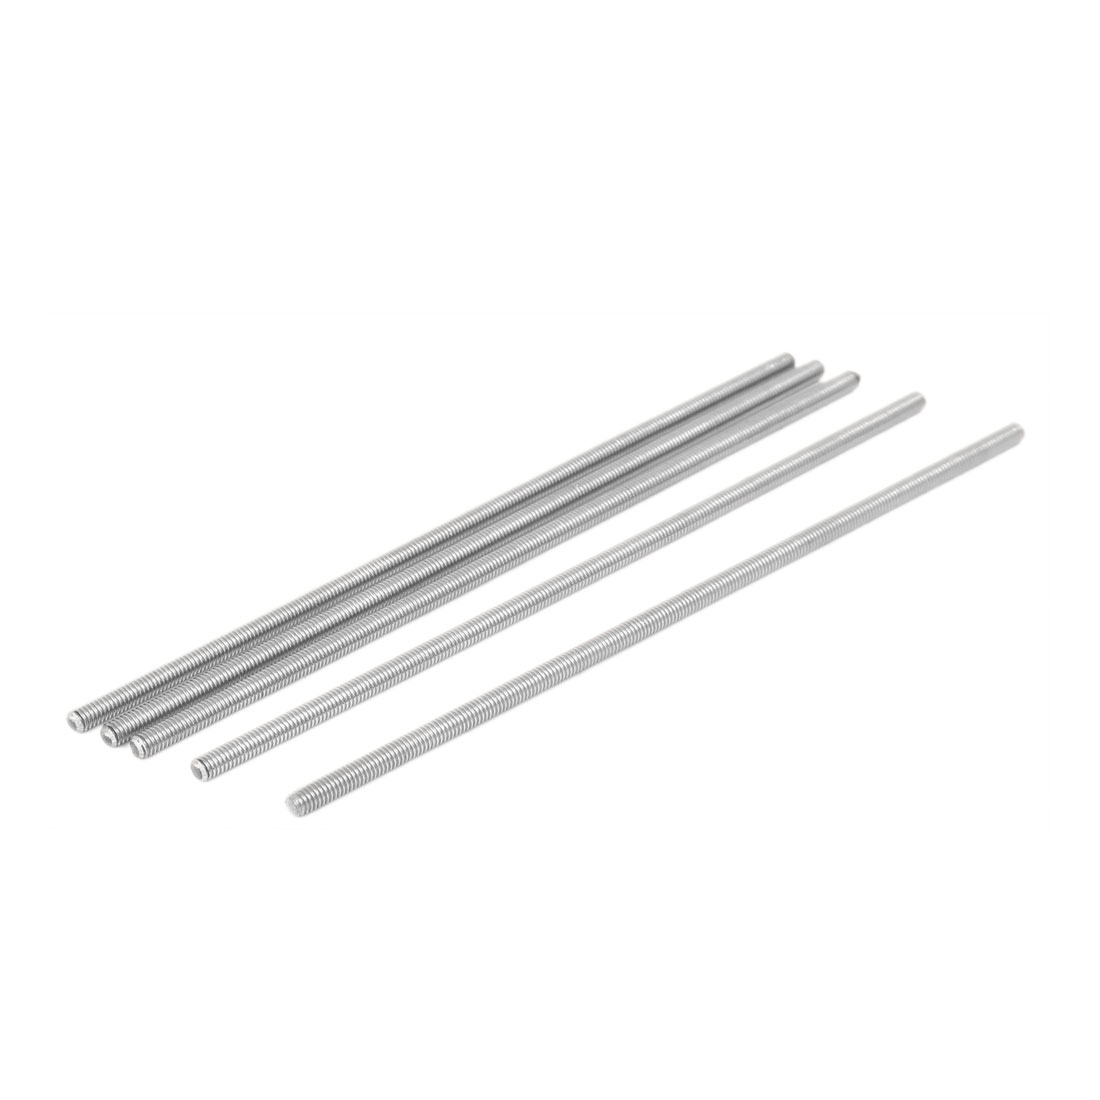 M4 x 150mm 304 Stainless Steel Fully Threaded Rod Bar Studs Silver Tone 5 Pcs